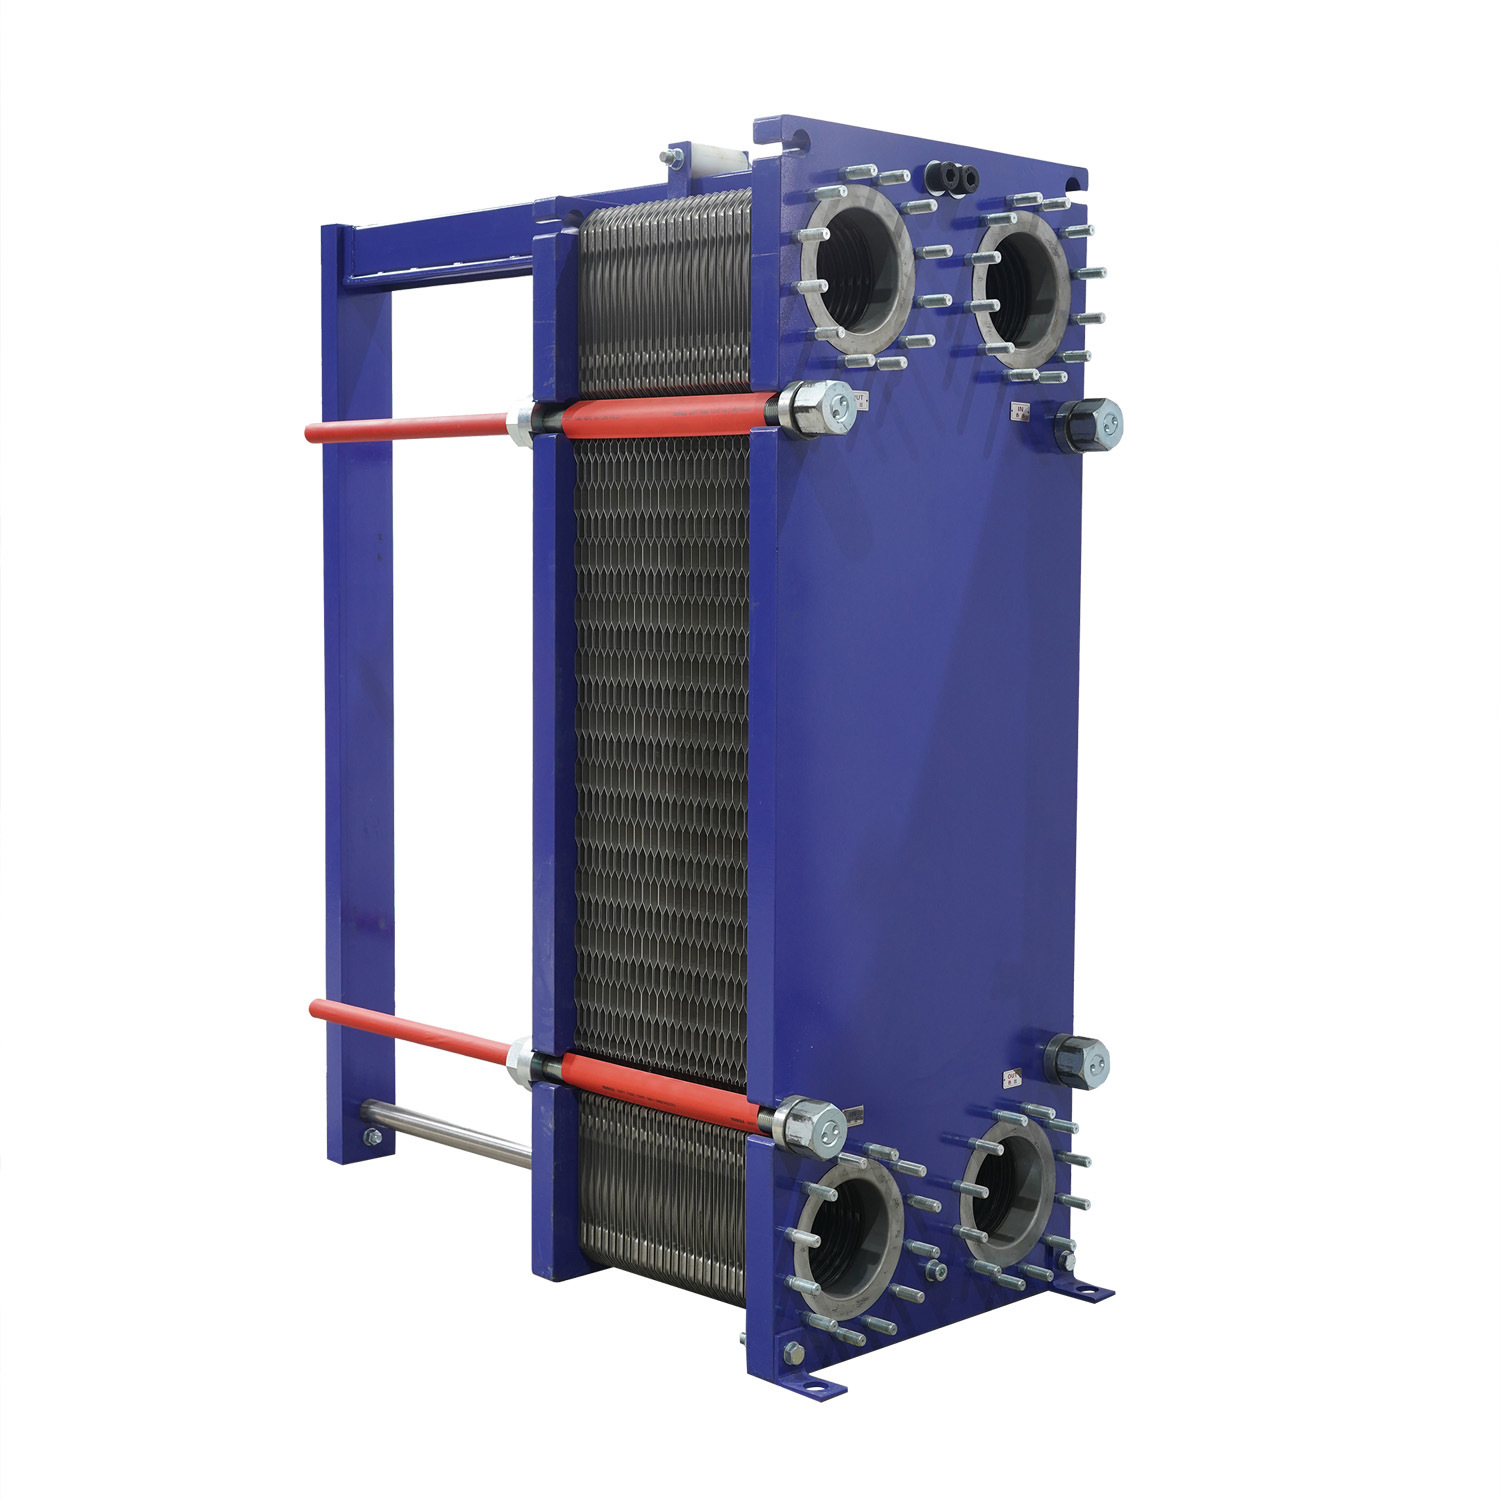 Application of plate heat exchanger in paper industry